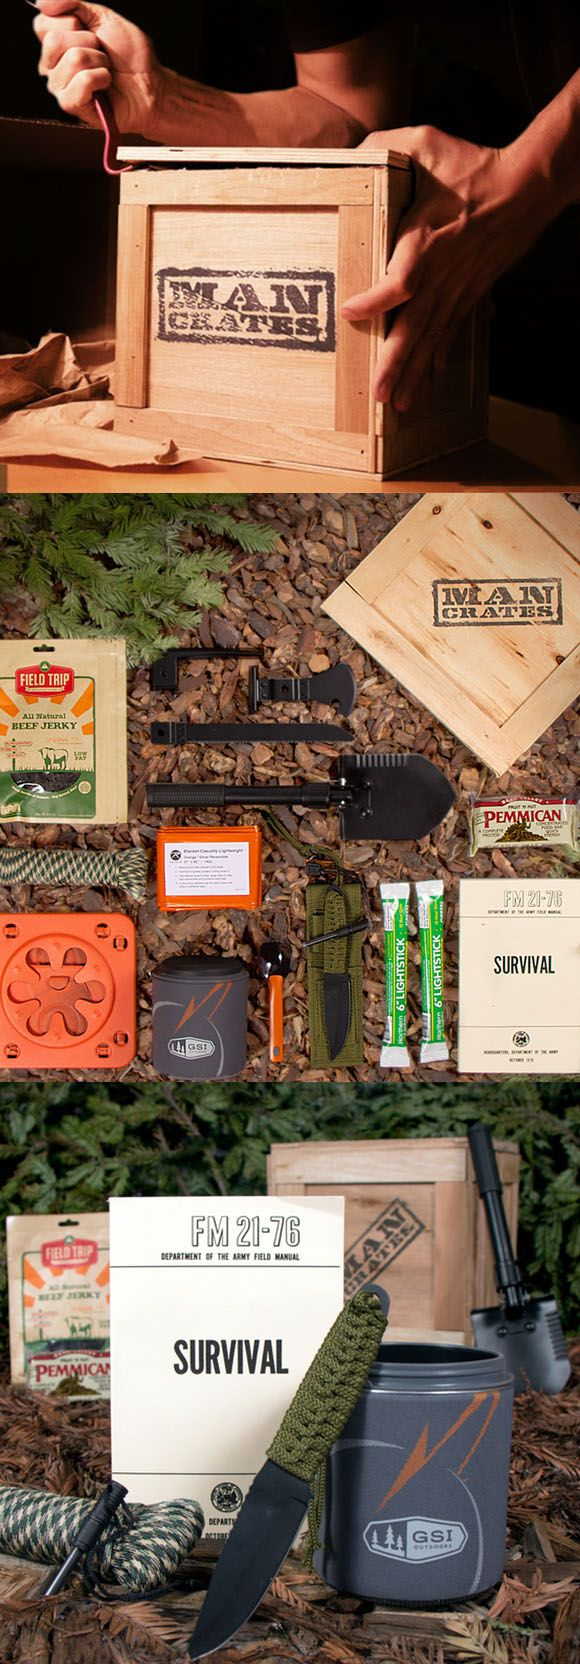 The ultimate gift for the outdoorsman - this is perfect for him! Soo perfect for Father's Day! #mancrates